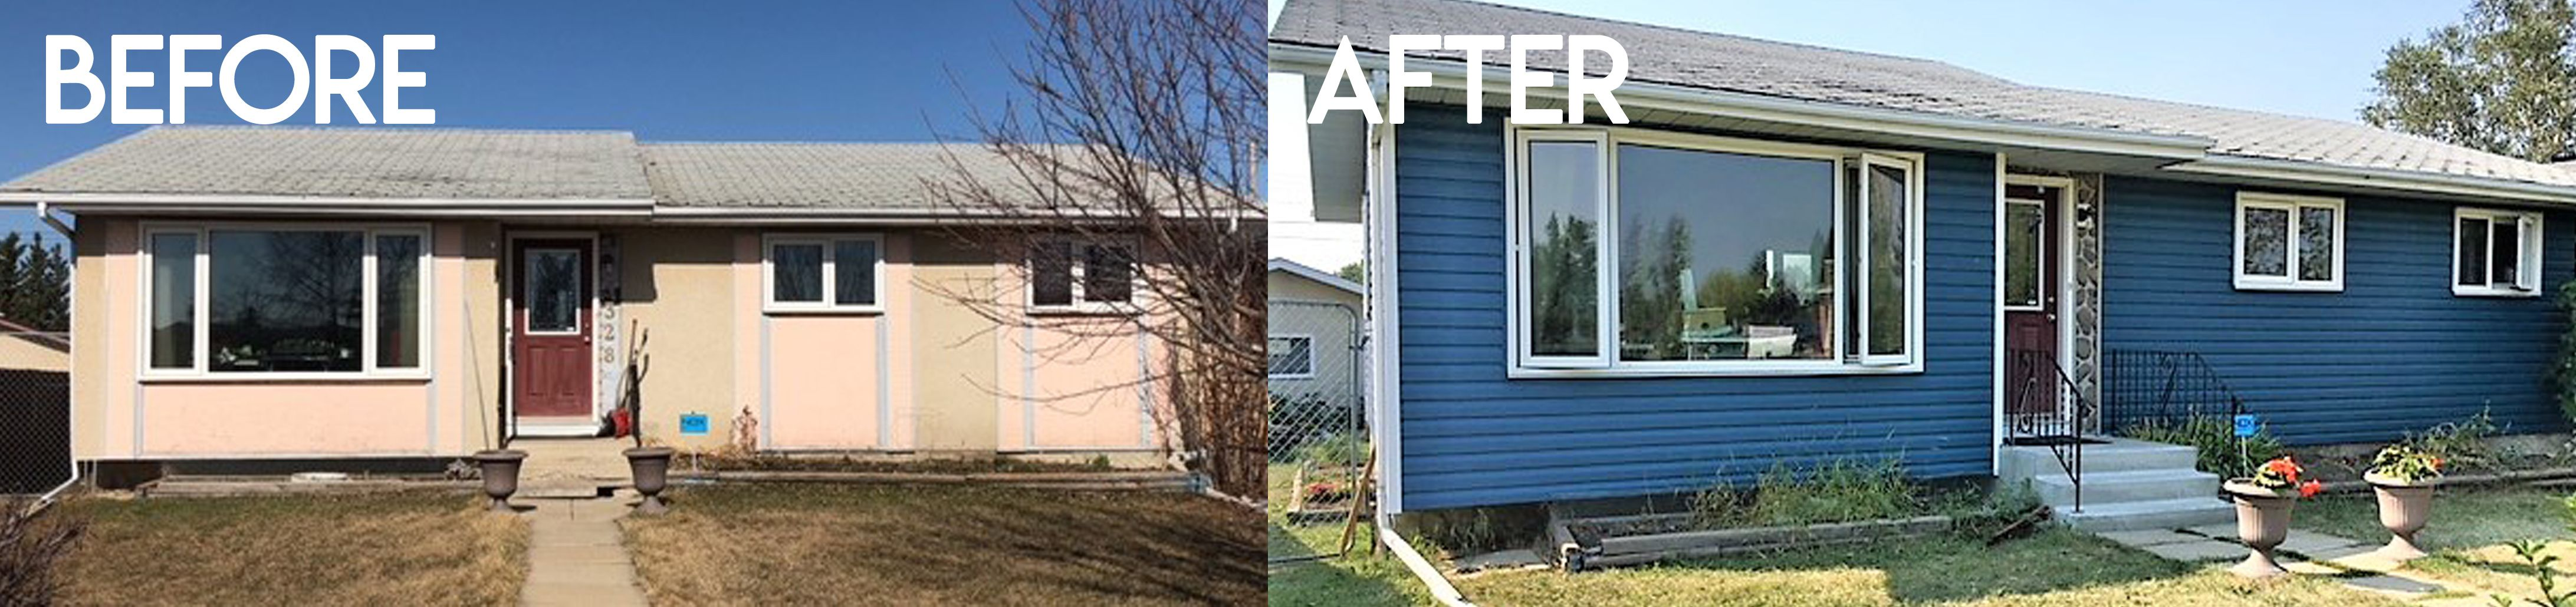 Installed Insulation And Royal Heritage Blue Vinyl Siding Over Top Of Existing Stucco On This Bungalo Exterior Renovation Bungalow Renovation Blue Vinyl Siding